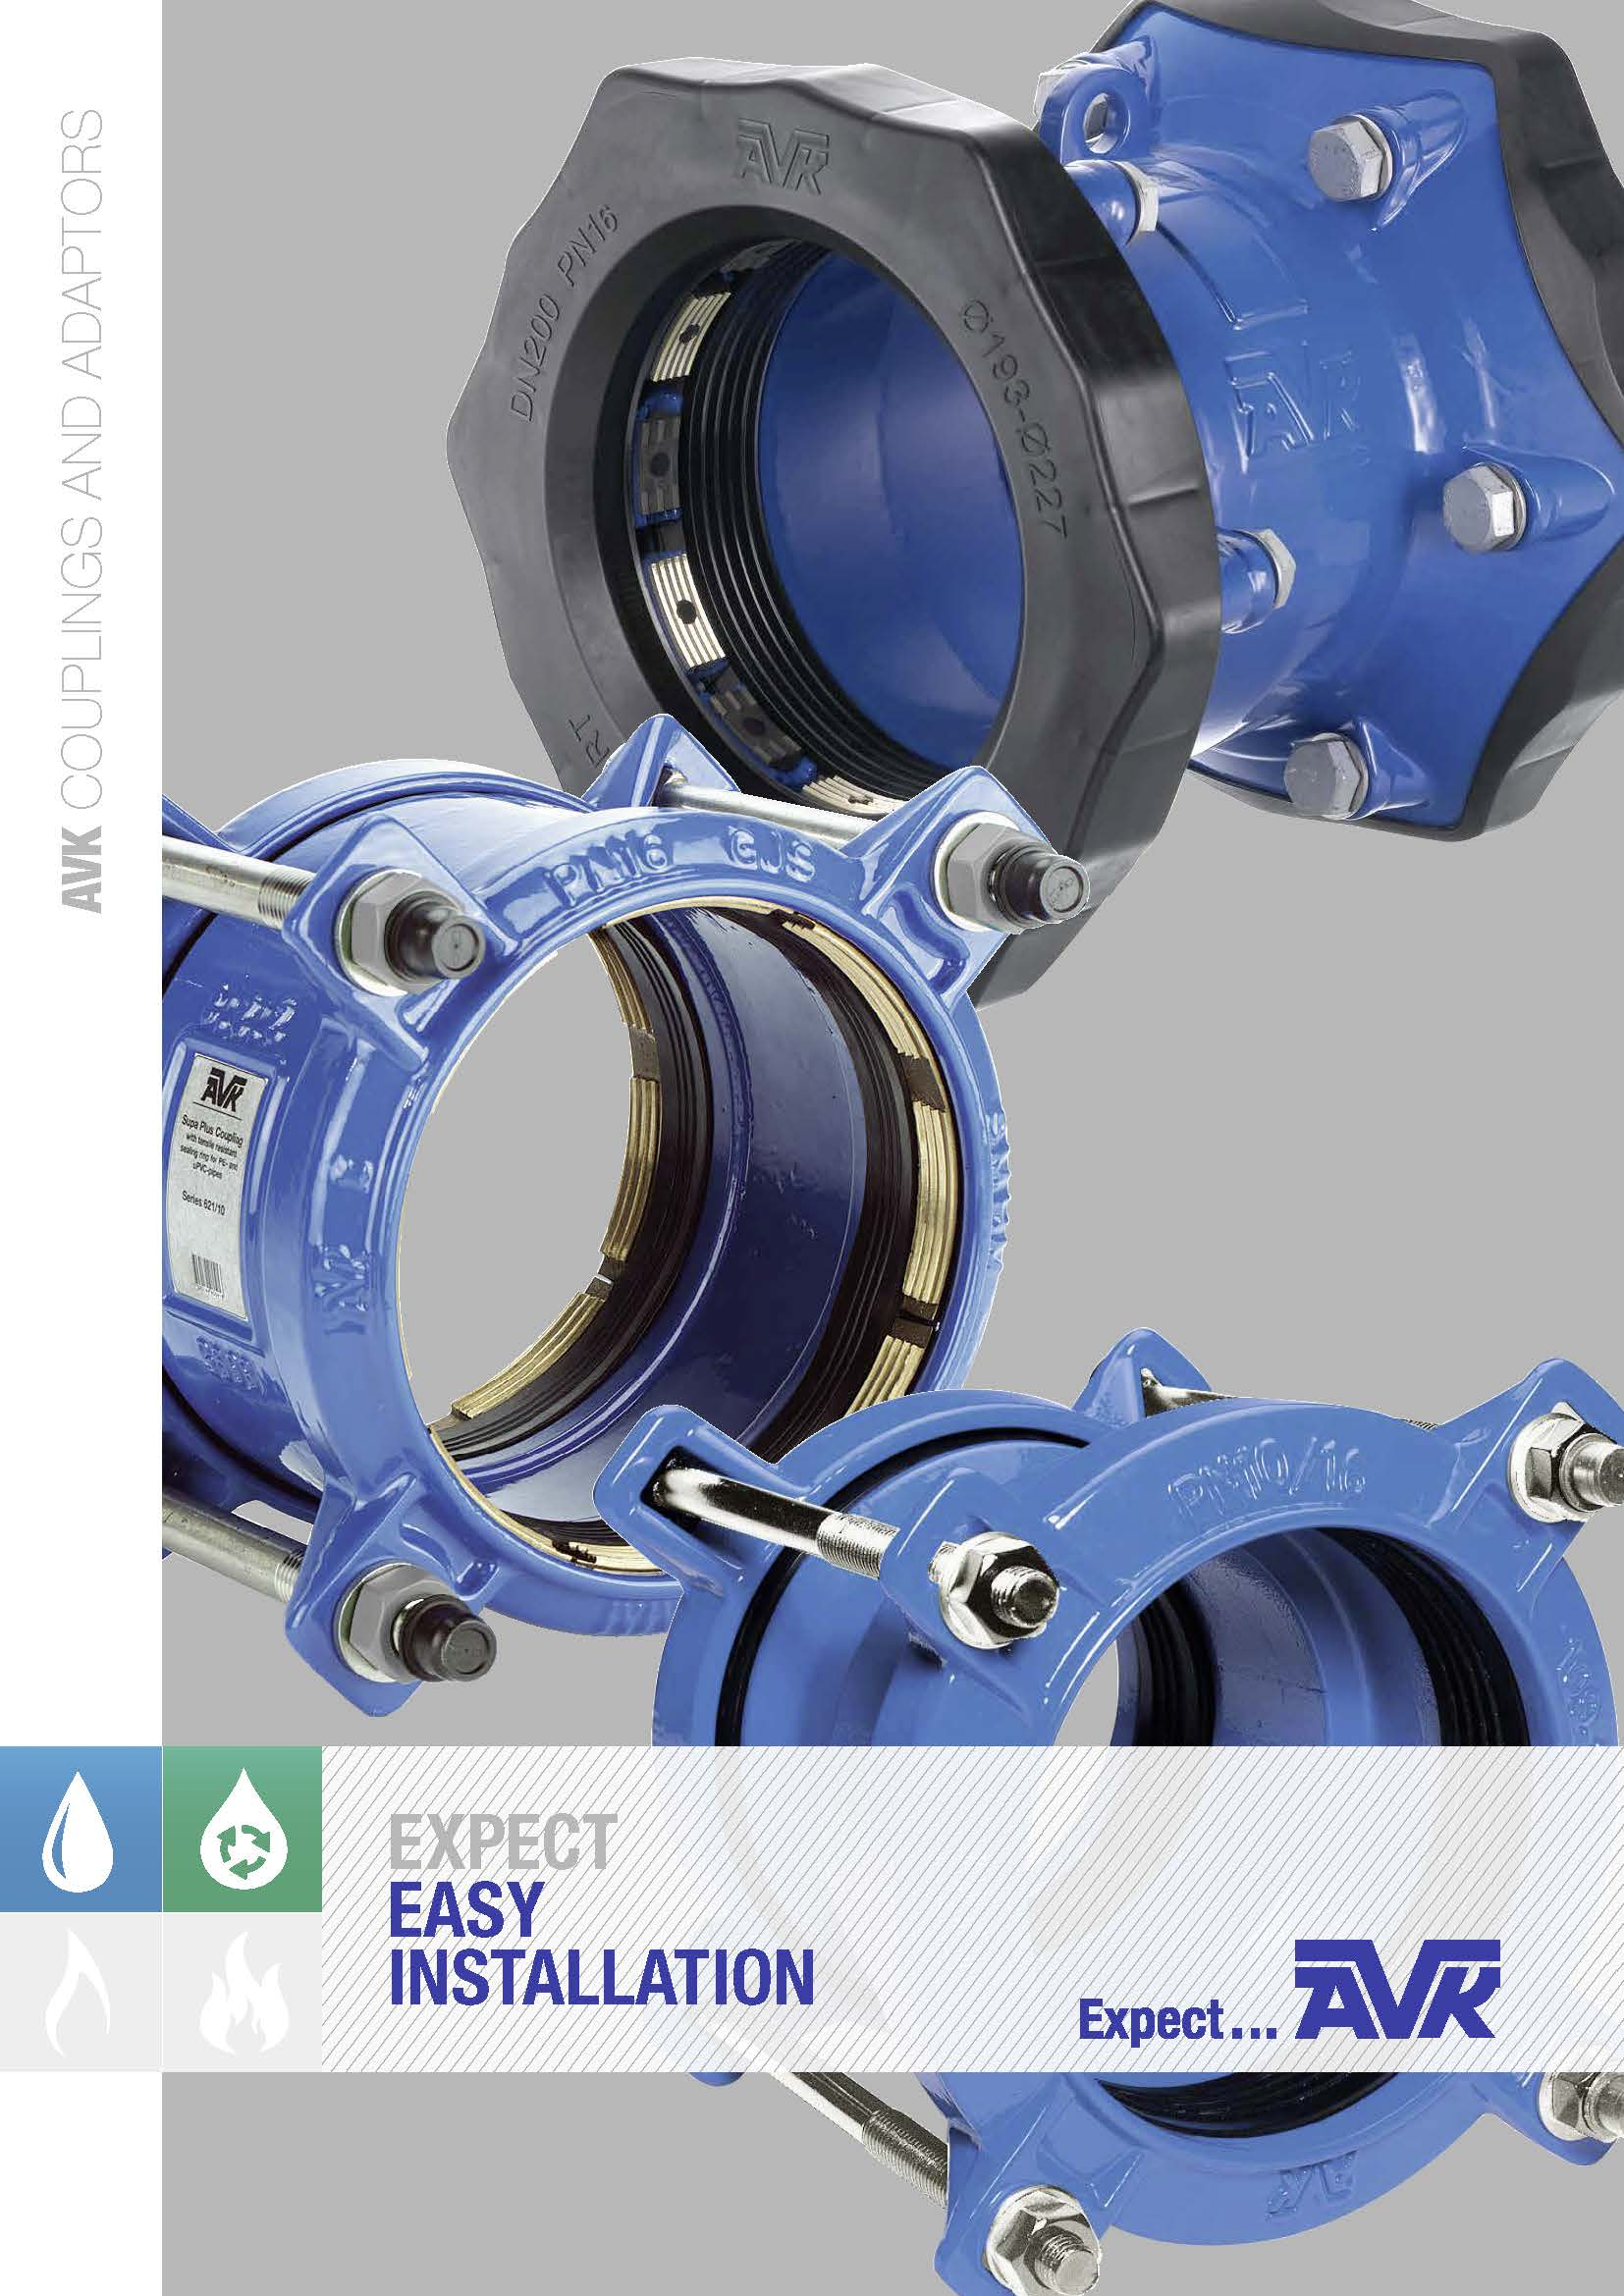 AVK brochure about couplings and adaptors